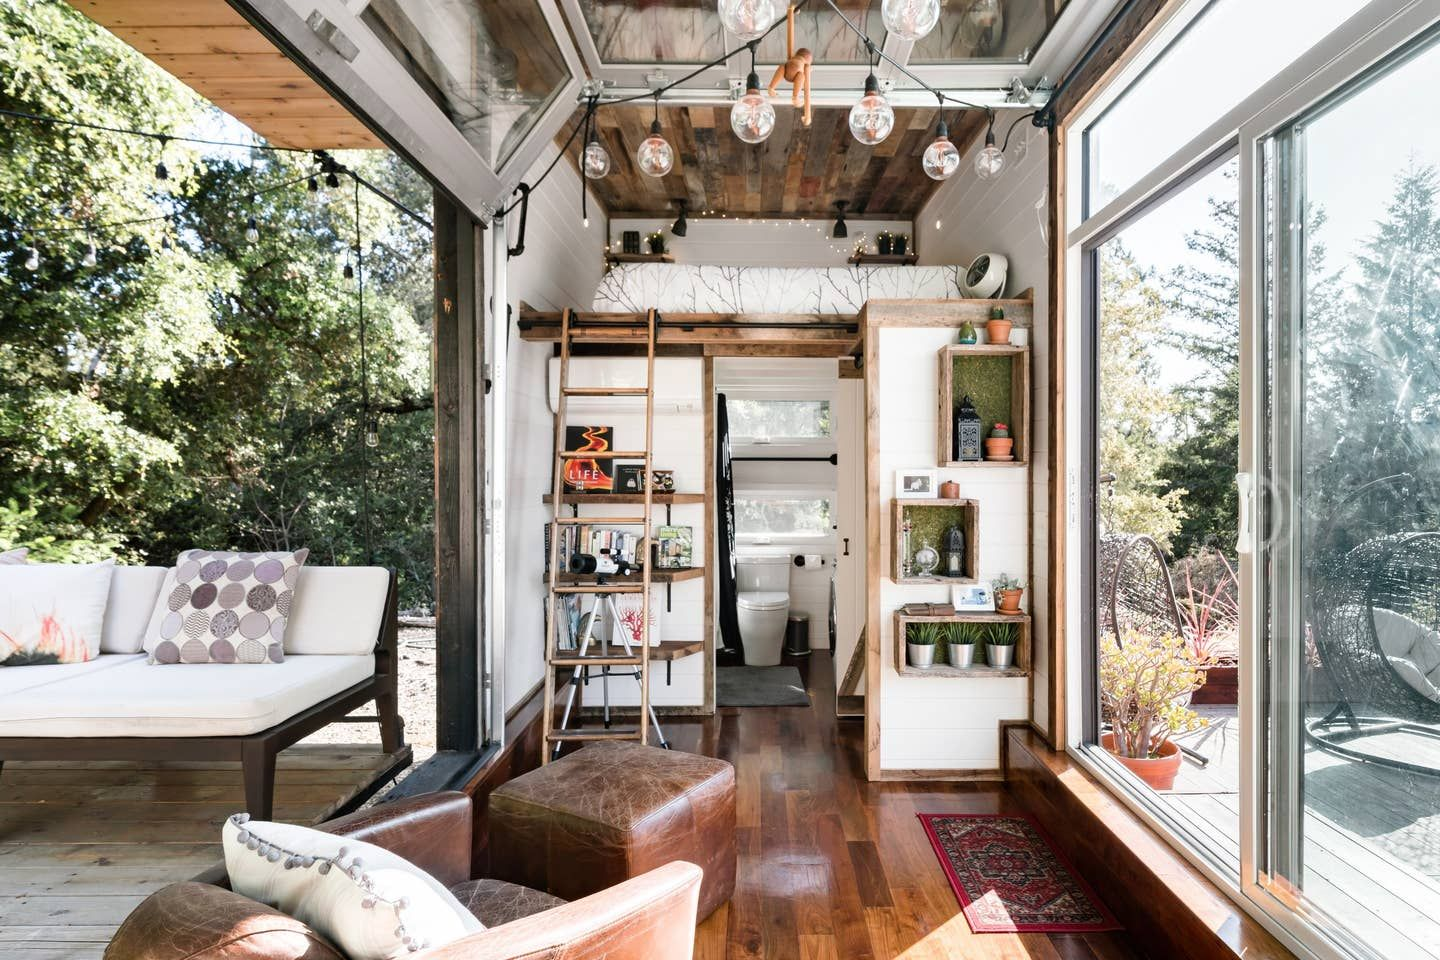 50 Tiny Houses You Can Rent on Airbnb in 2020! Tiny House